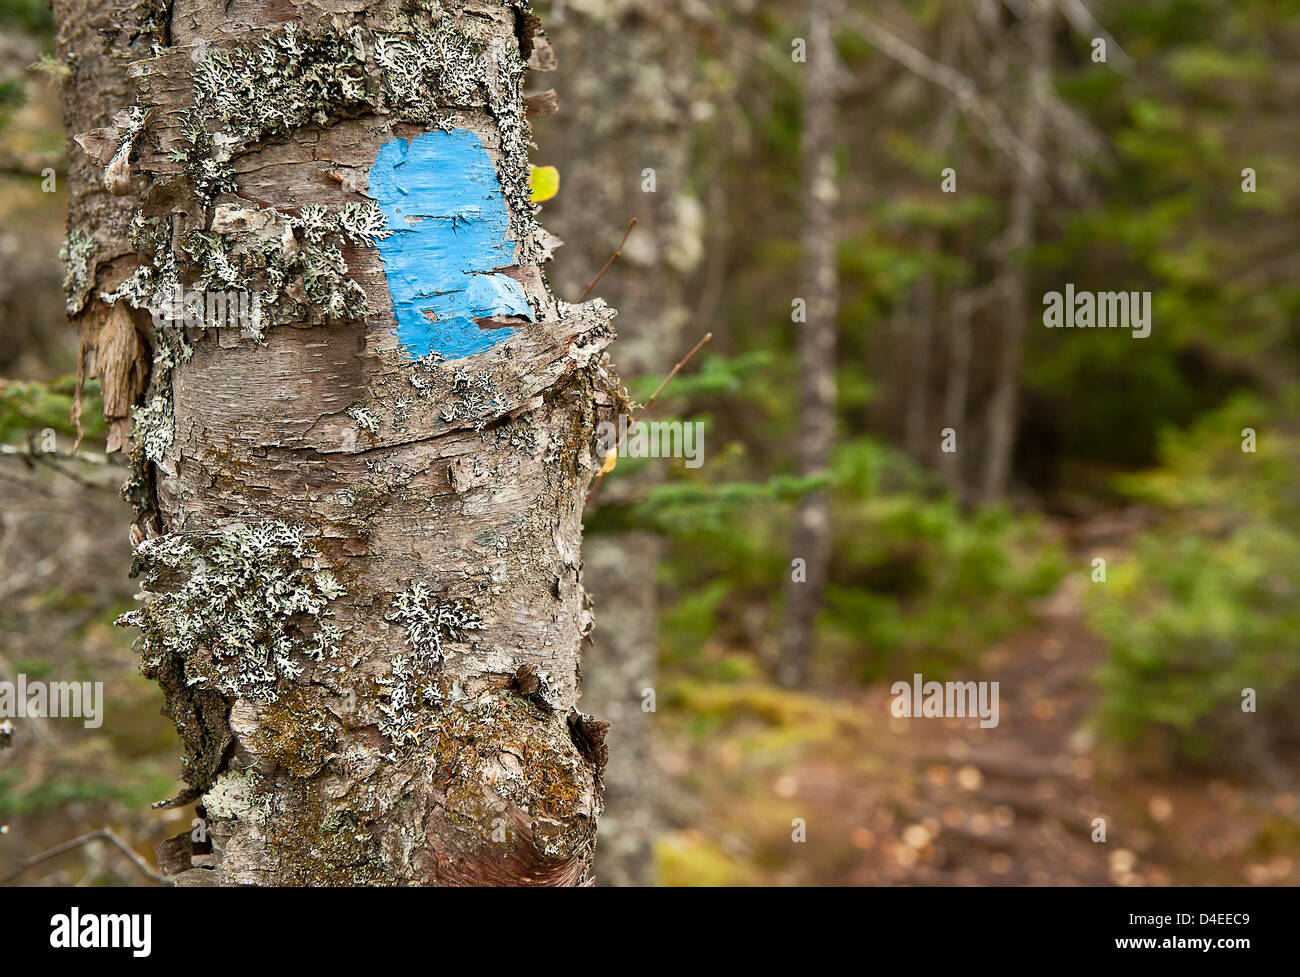 Hiking trail marker, Maine, USA - Stock Image